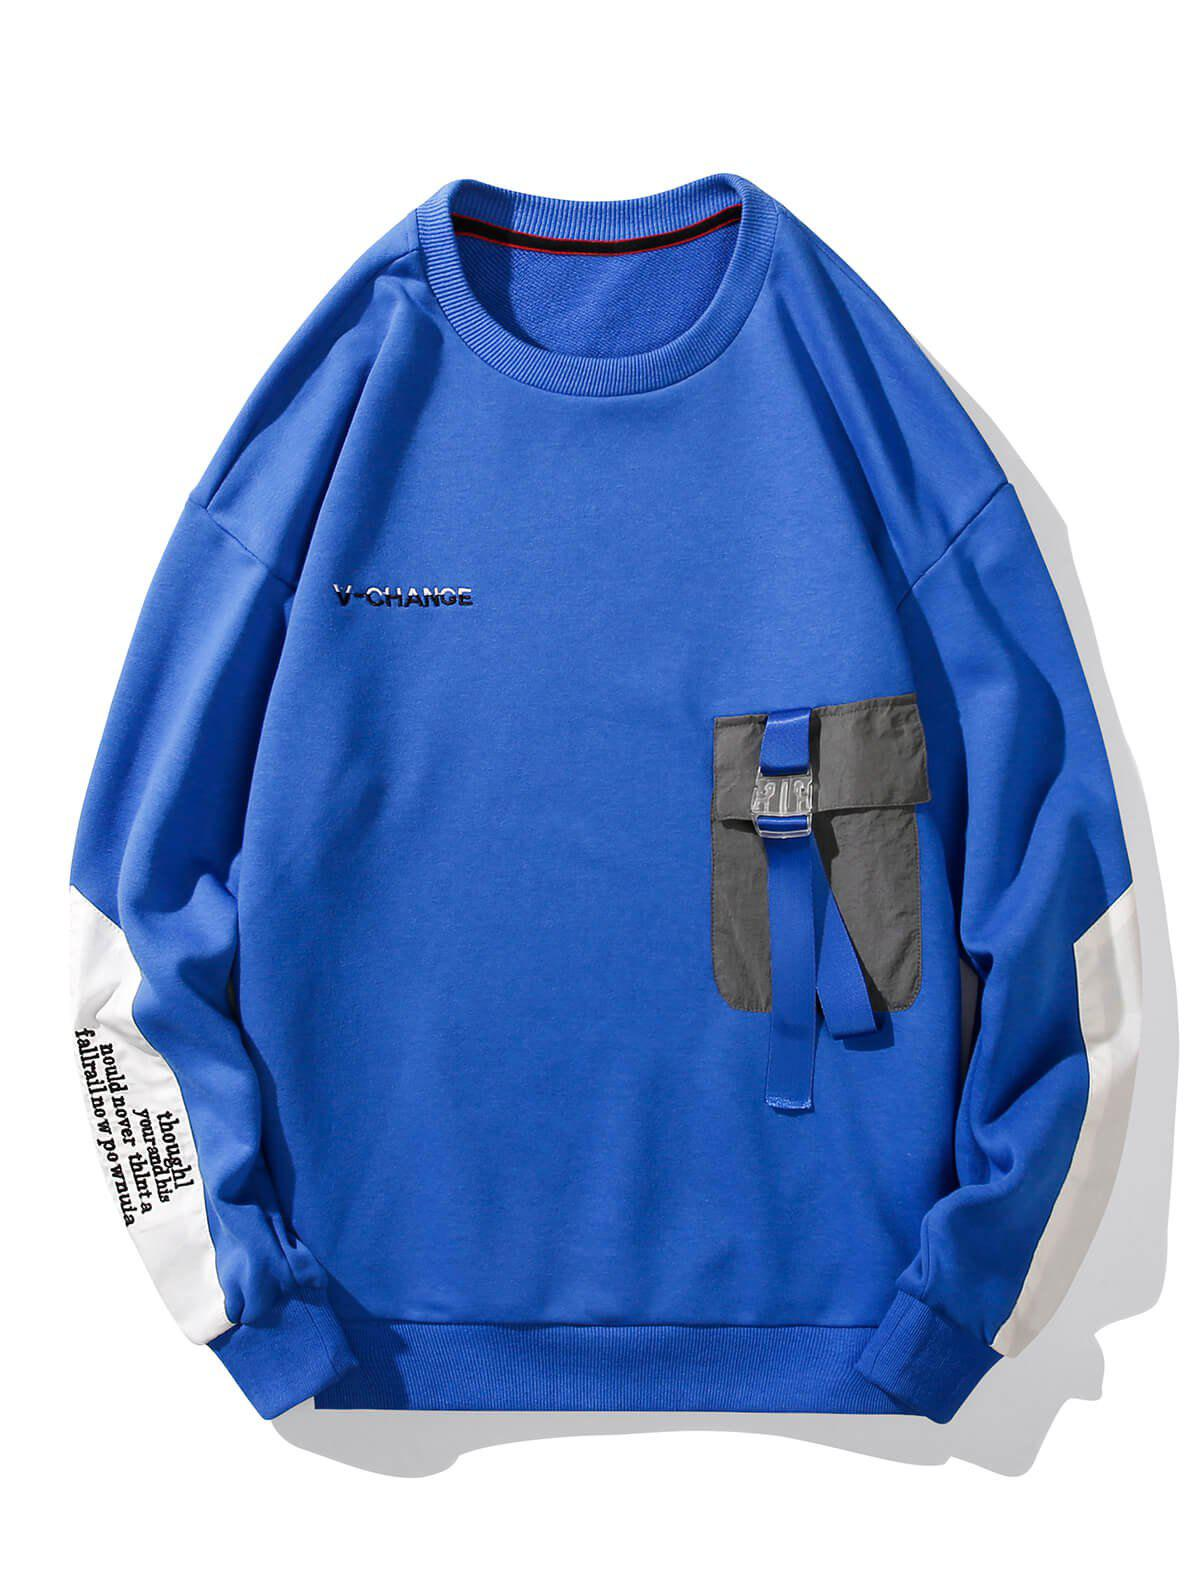 Discount Buckle Pocket Letter Embroidery Casual Sweatshirt